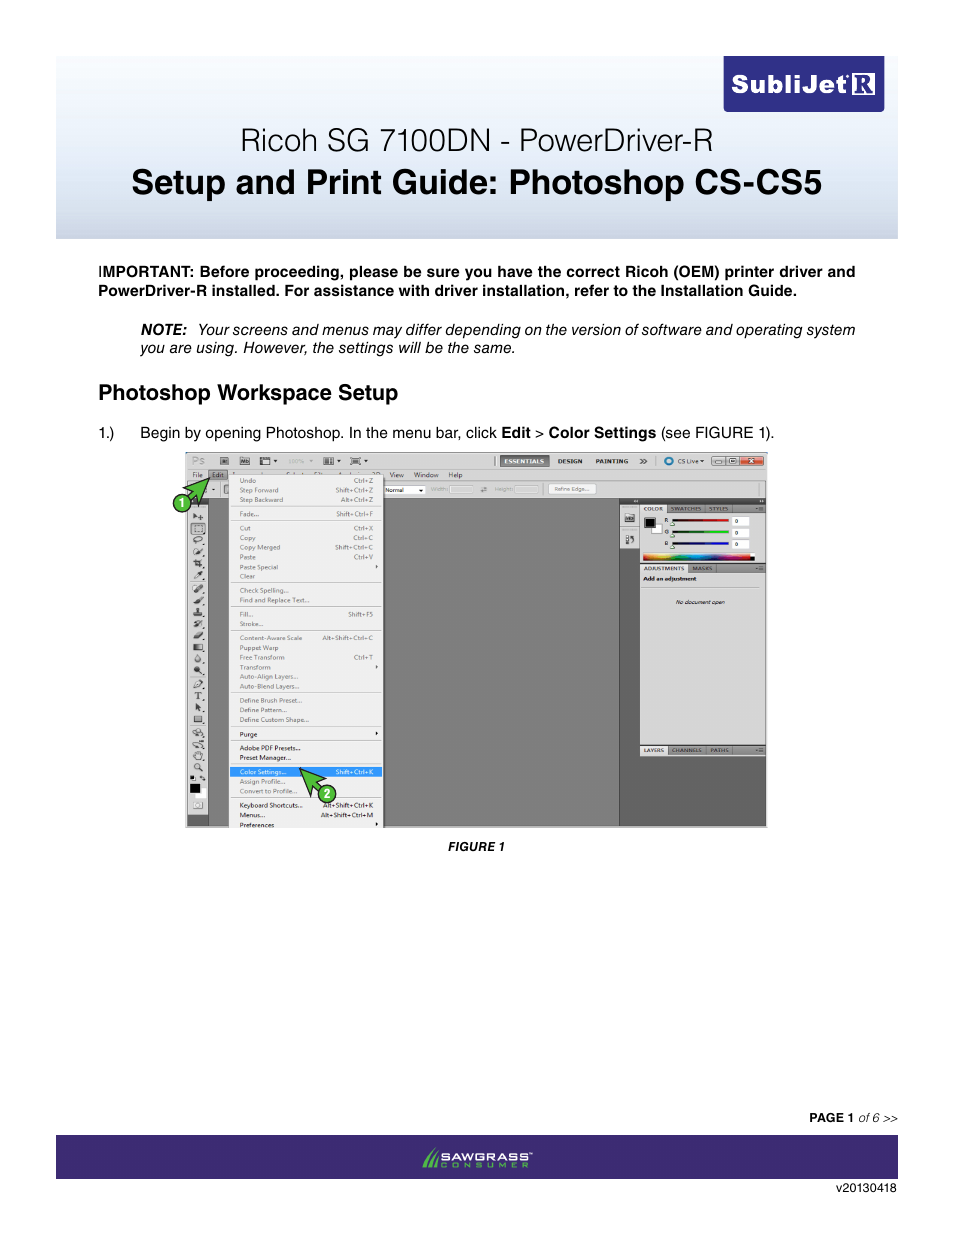 Xpres SubliJet R Ricoh SG7100DN (Windows Power Driver Setup): Print & Setup  Guide Adobe Photoshop CS - CS5 User Manual | 6 pages